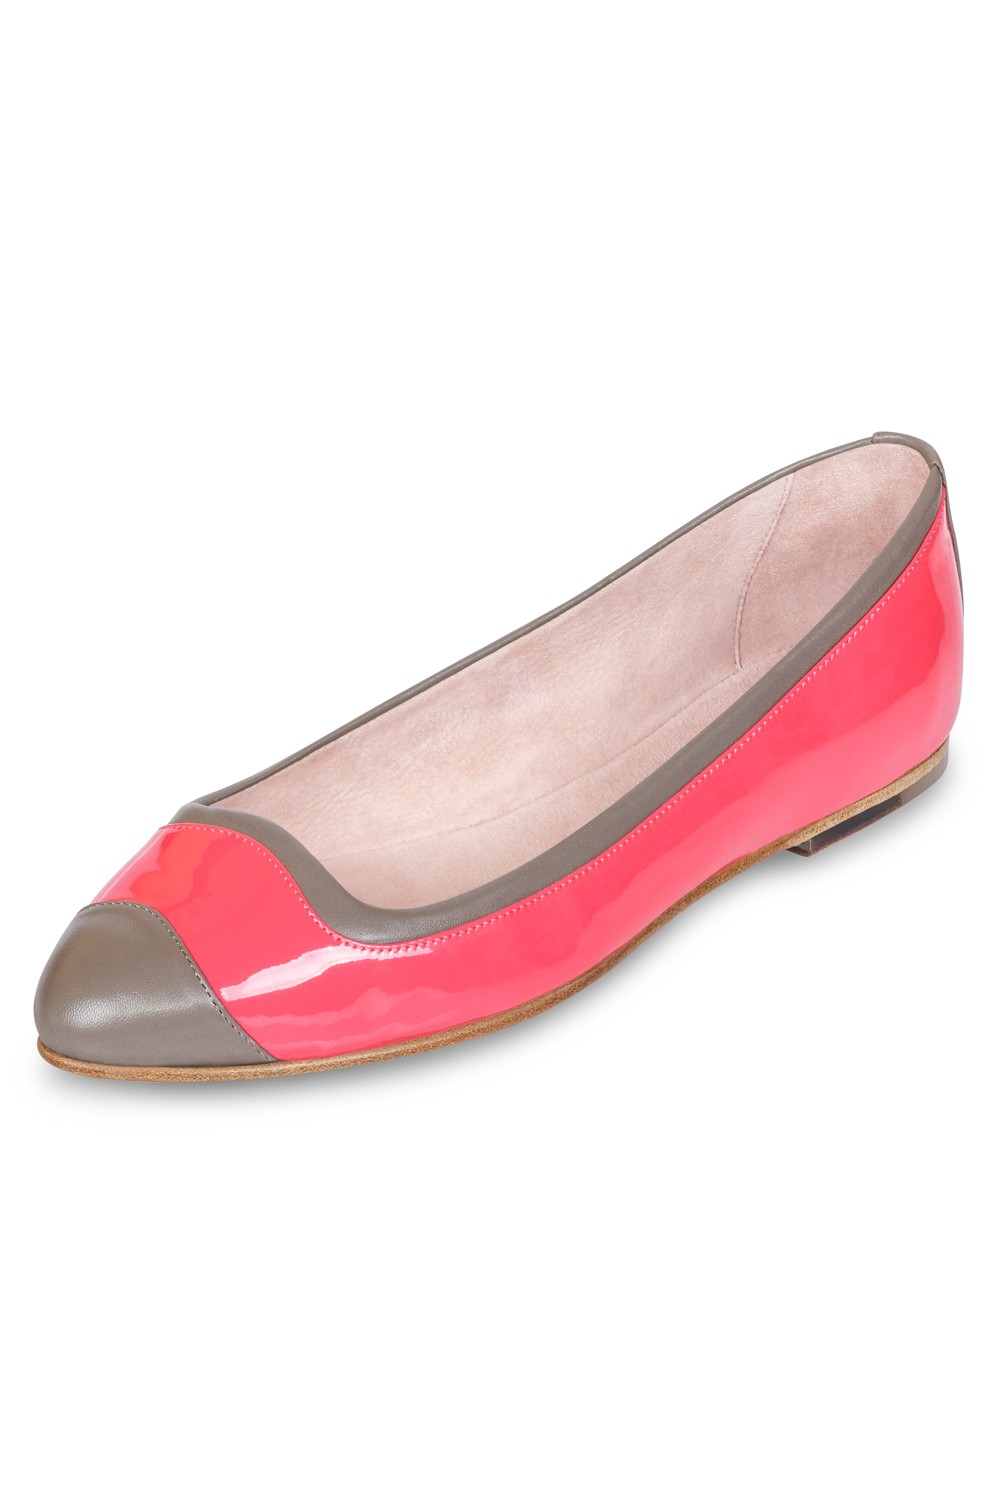 Manuela Two Tone Ballet Flats Womens Fashion Shoes